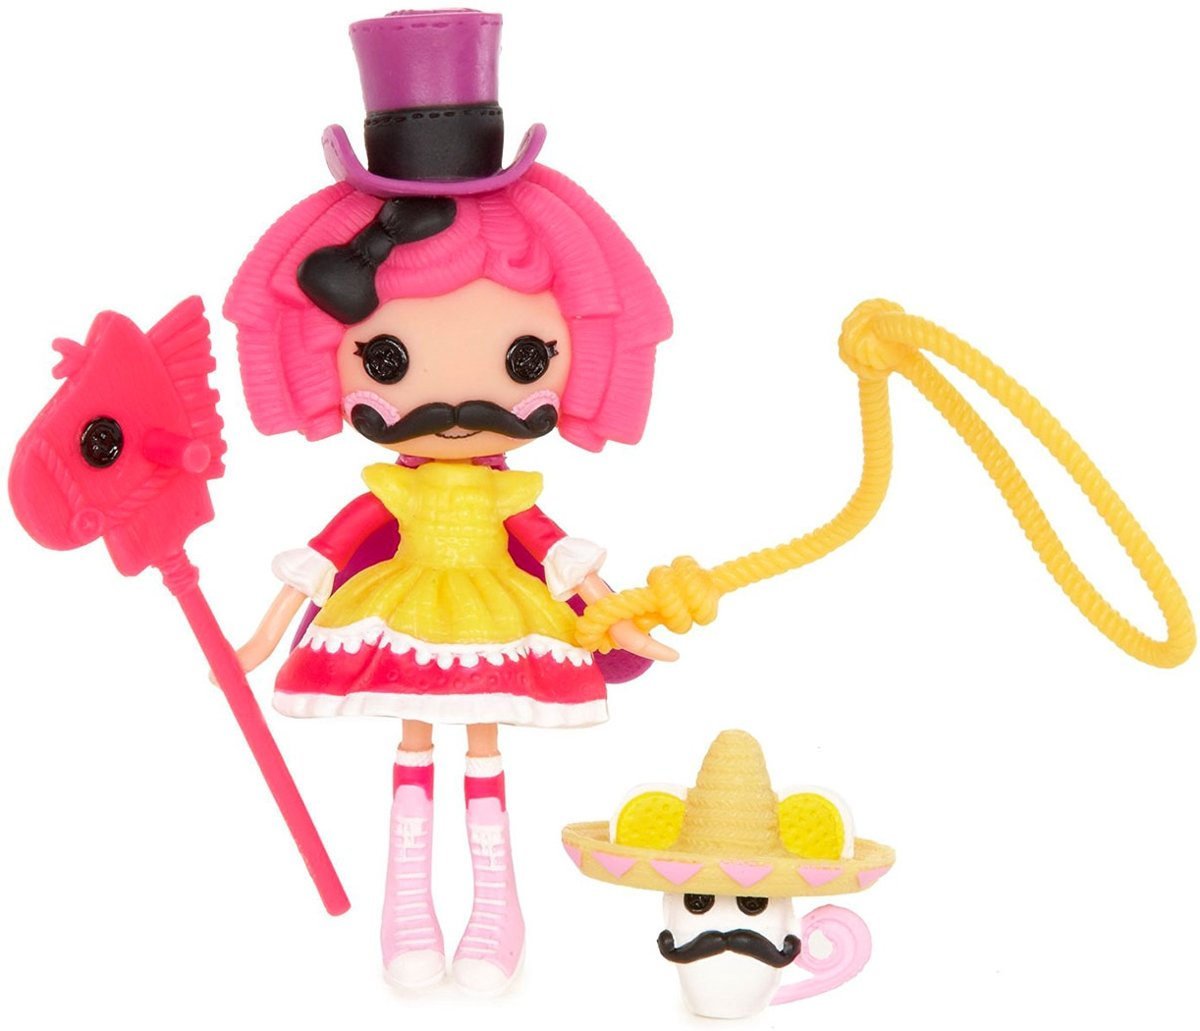 Mini Lalaloopsy Moments in Time - Crumbs Sugar Cookie